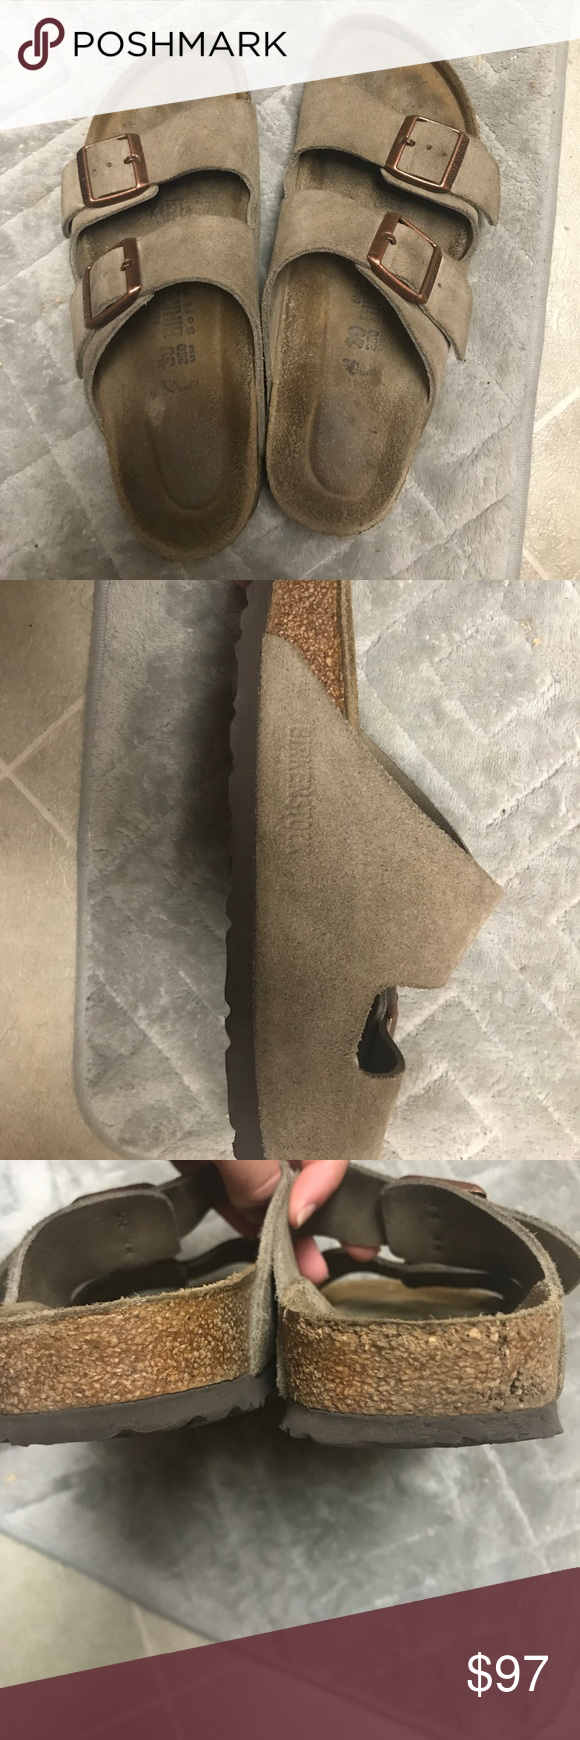 Birkenstock Sandal Selling my suede taupe soft footbed Birkenstock sandals. I love them but they just don't fit how I want them to :( They are lightly worn only a few times and still have a lot of life left in them. If anyone has these exact ones in a size 37-38 I'm willing to trade based off of how worn they are obviously. Birkenstock Shoes Sandals